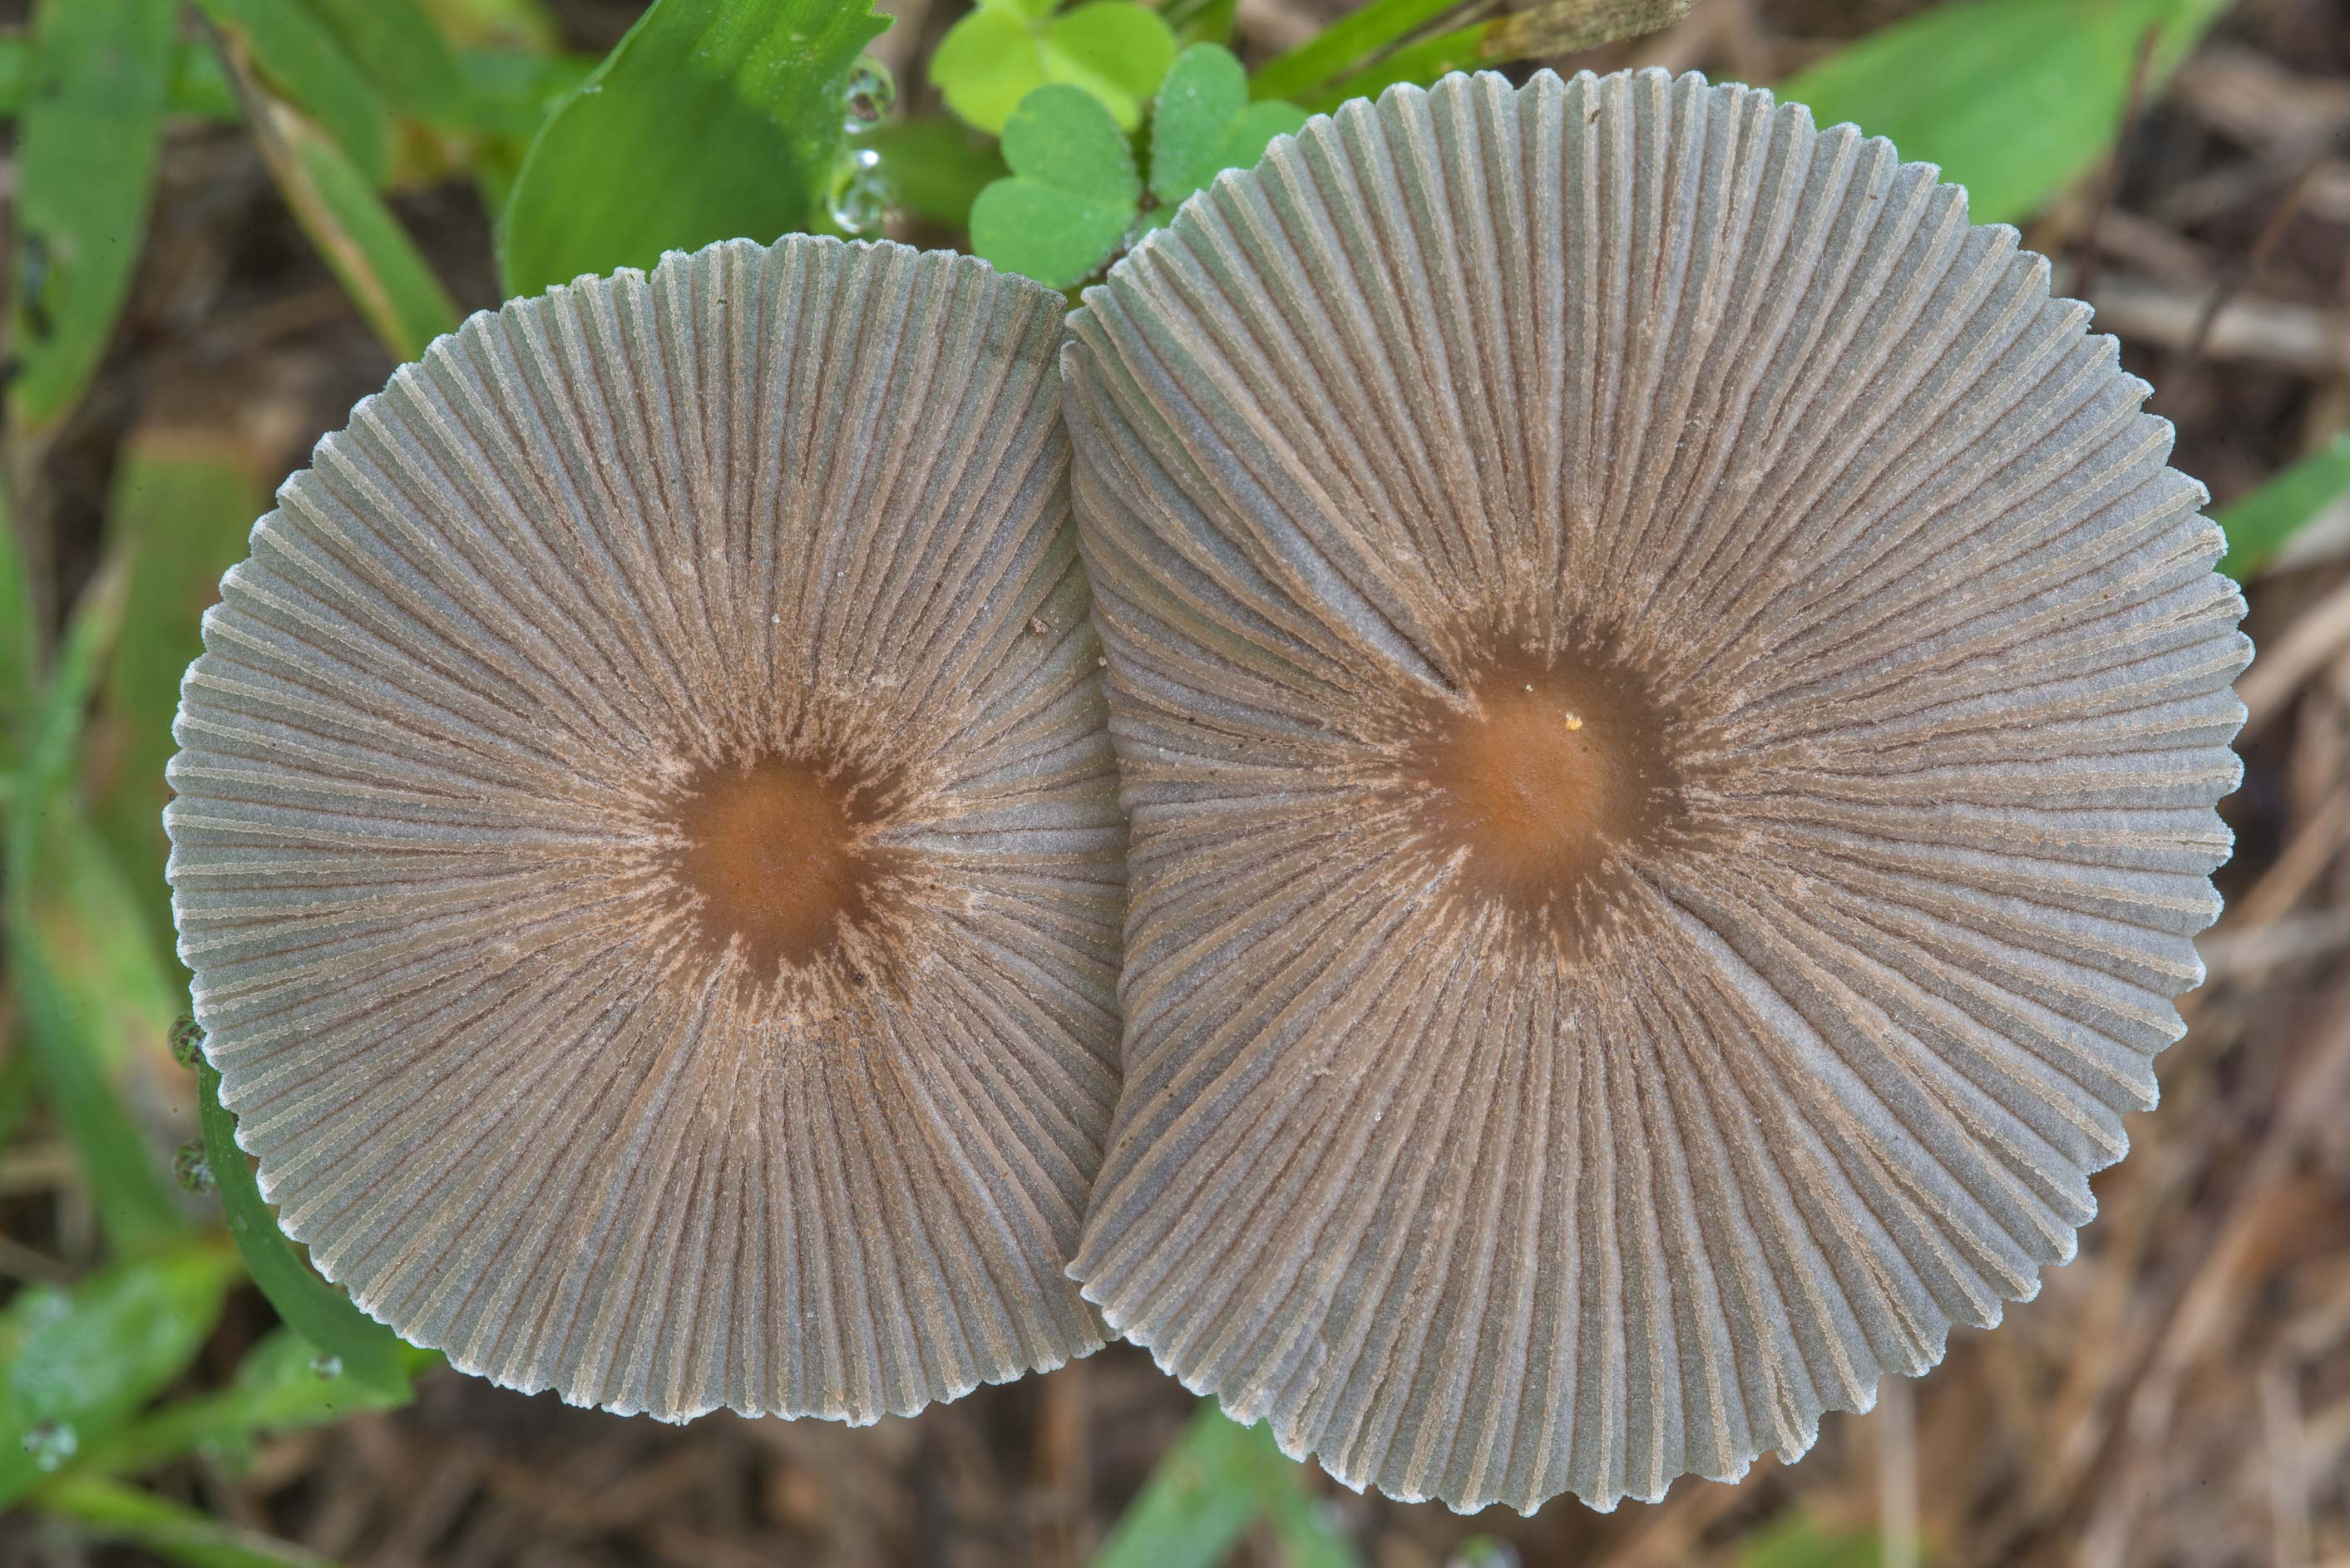 Pleated inkcap mushrooms (Parasola plicatilis...Ashburn St.. College Station, Texas